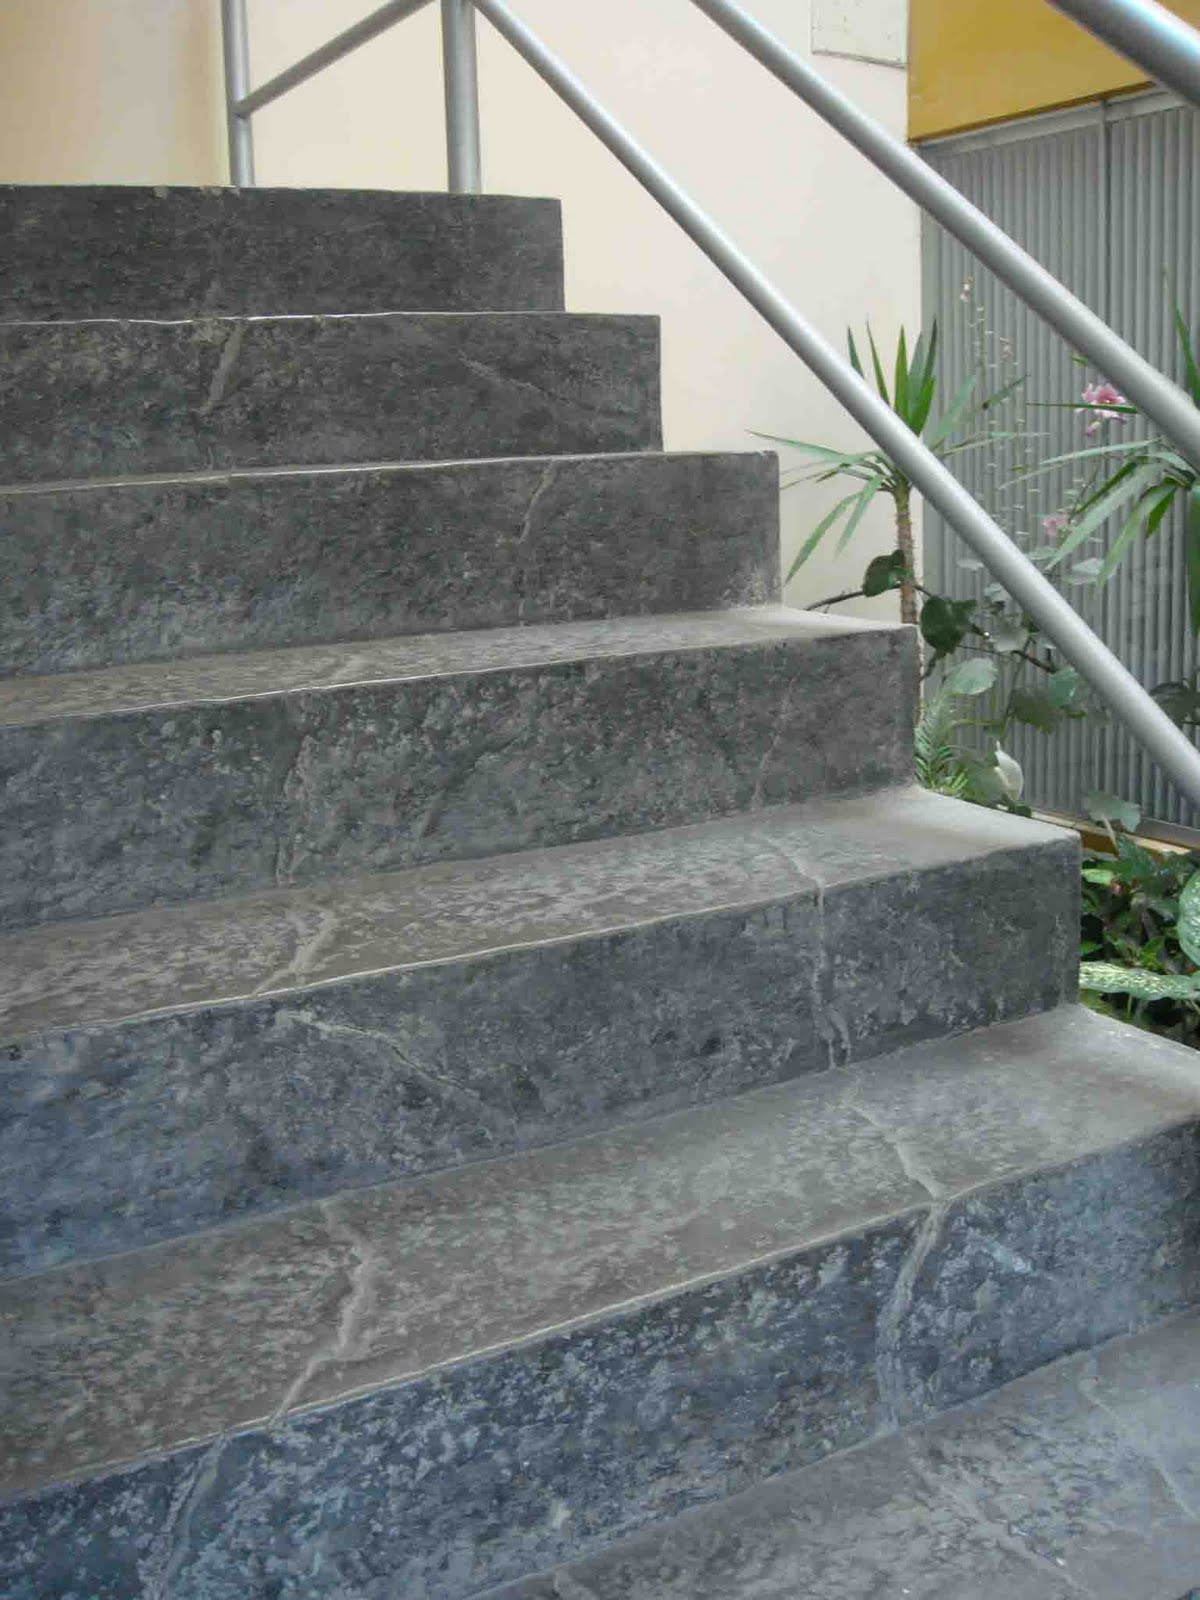 Increte per systems escalera con concreto decorativo for Escaleras de cemento pulido